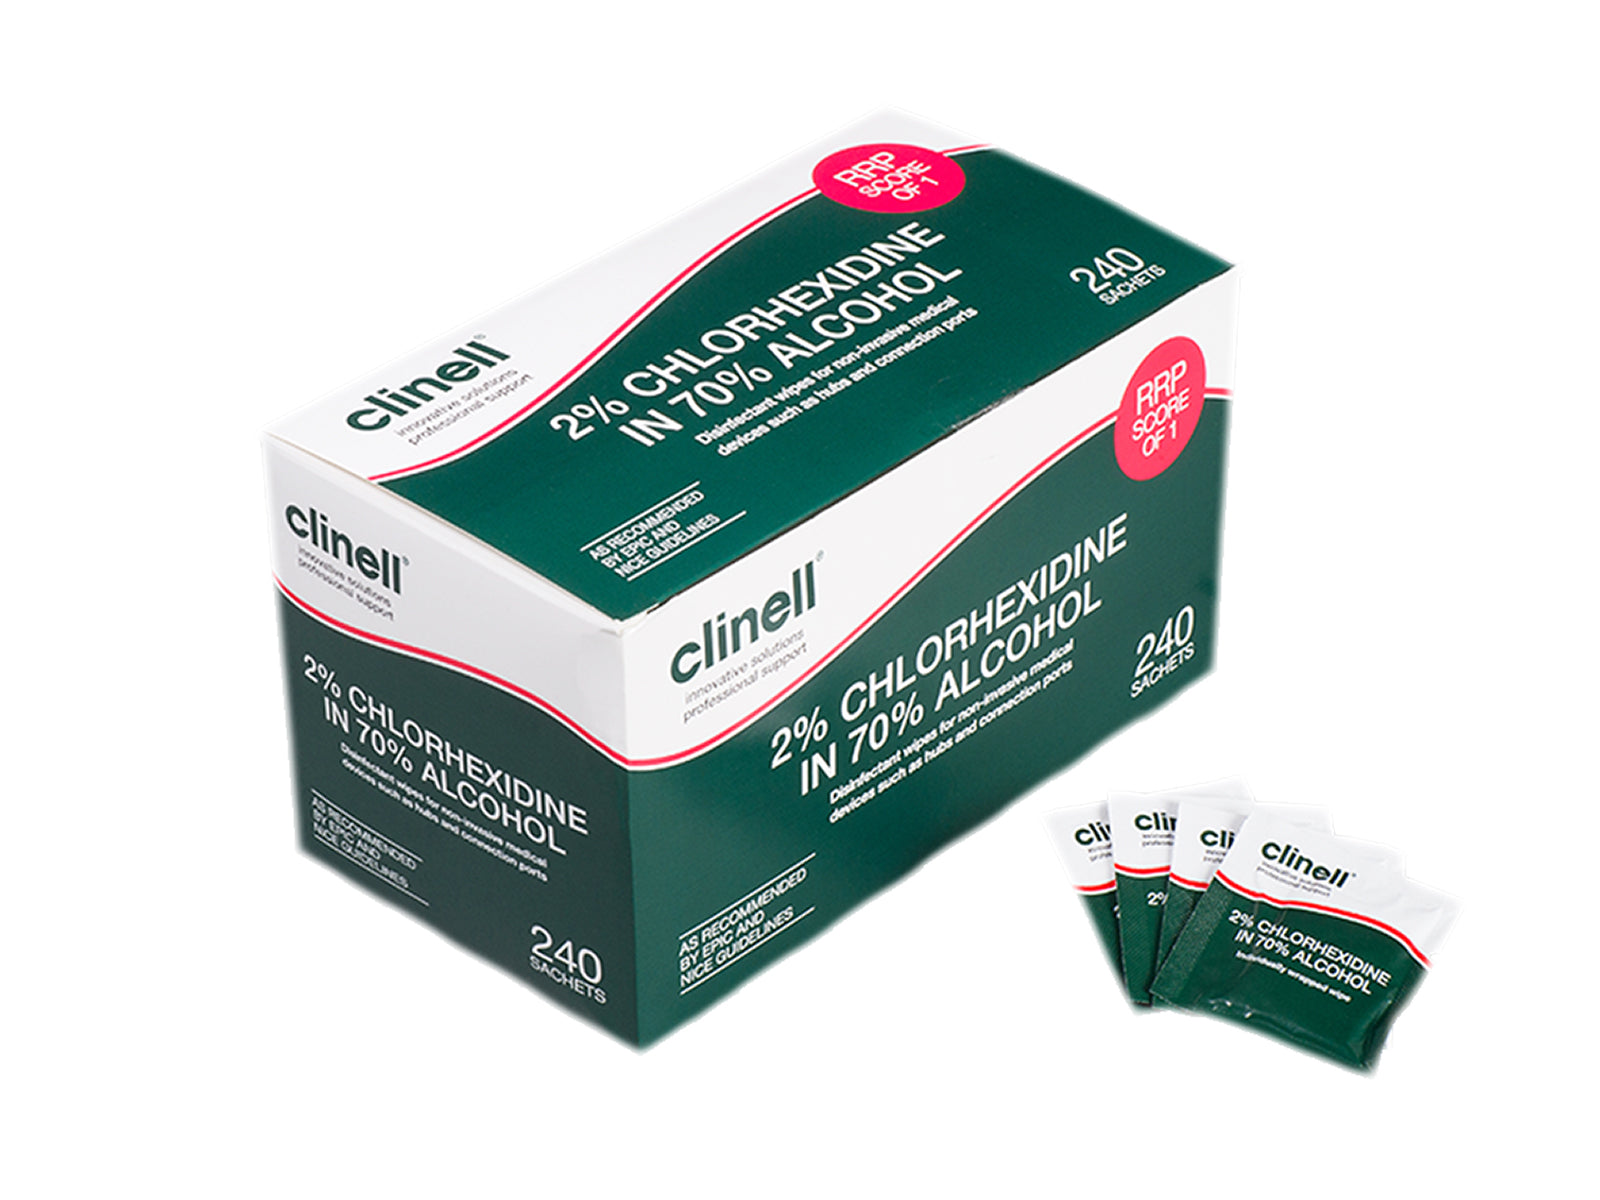 Clinell 2% Chlorhexidine in 70% Alcohol Equipment Wipes (240)